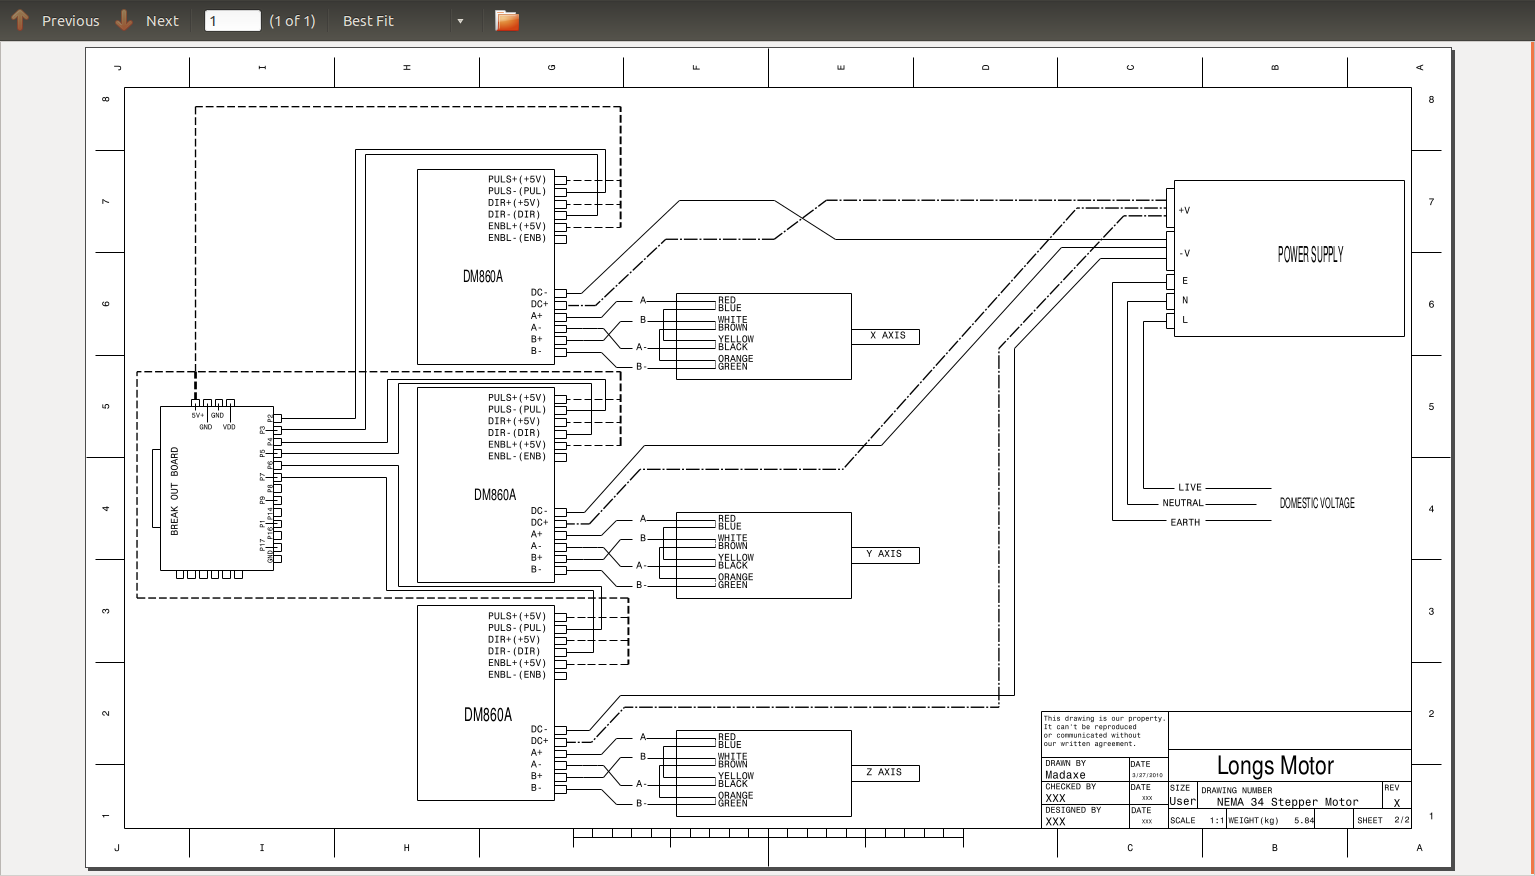 linux with diy cnc router wiring diagram for homemade cnc wiring diagram for engine for 1997 camaro z28 #13